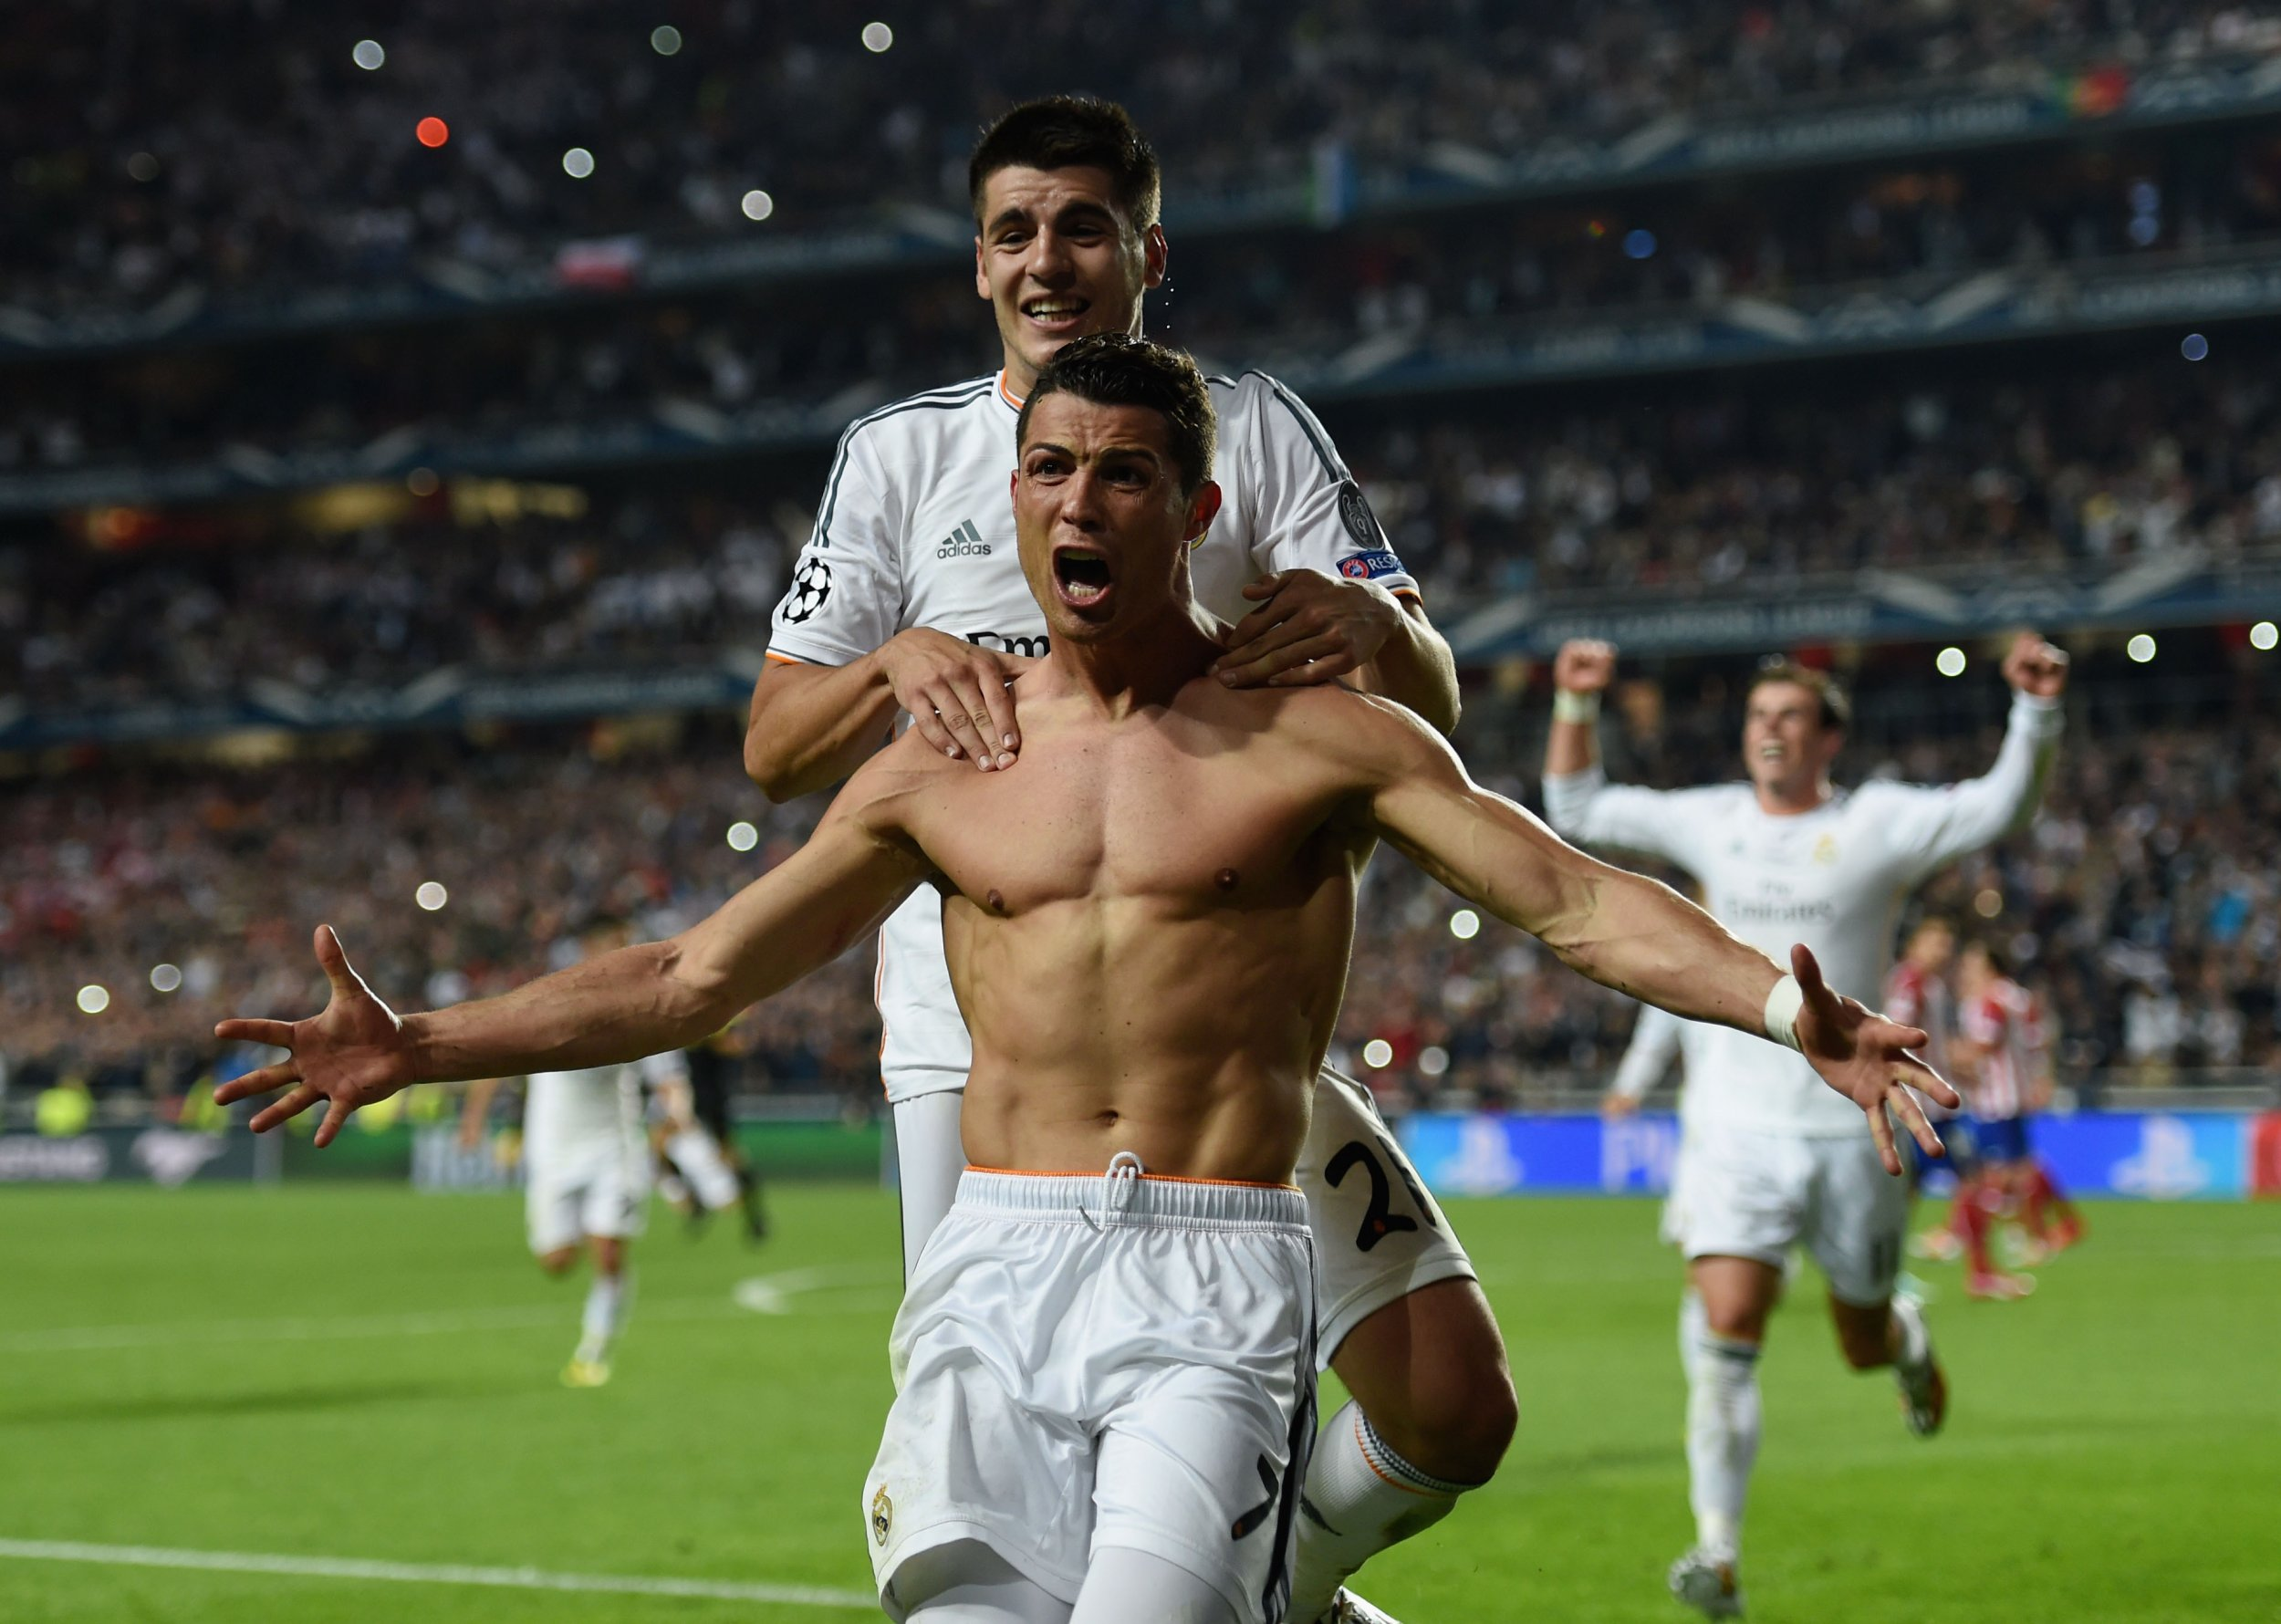 photos NAKED GAYSIM IN CR7 of nude